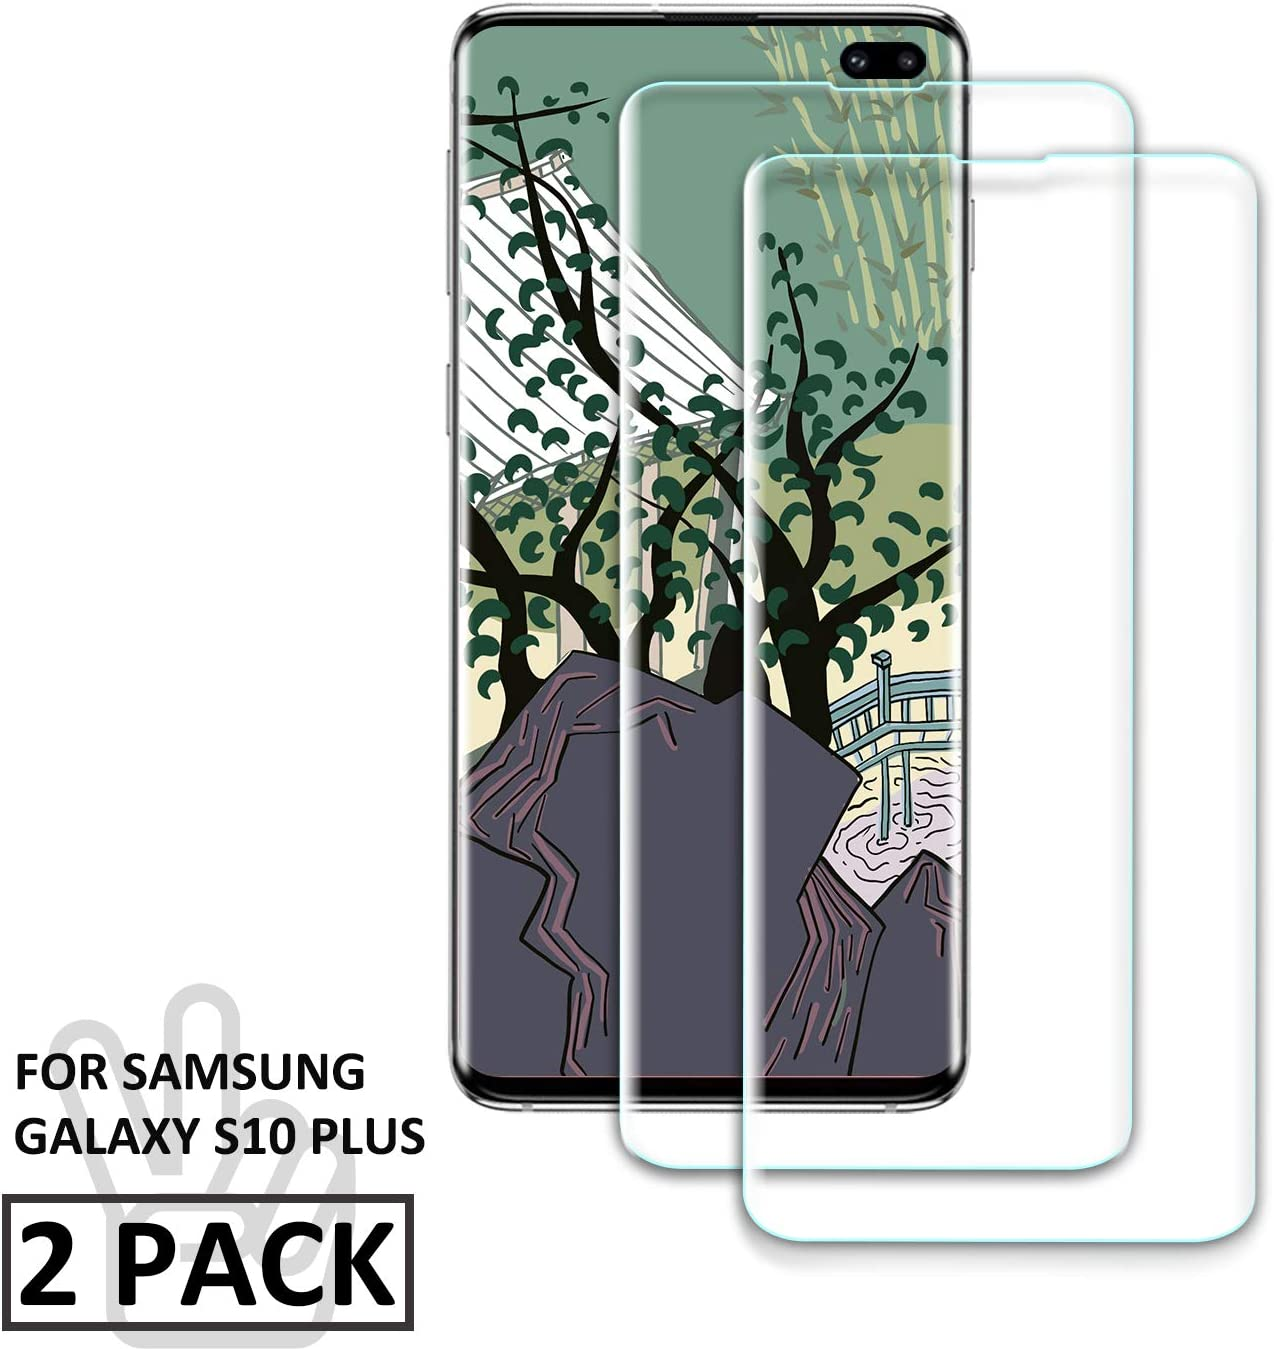 Premium Tempered Glass Screen Protector film for Samsung Galaxy S20 Plus 2 Pack Anti Shatter 9H Hardness Roclot Galaxy S20 Plus Screen Protector, Compatible with fingerprint sensor Bubble Free